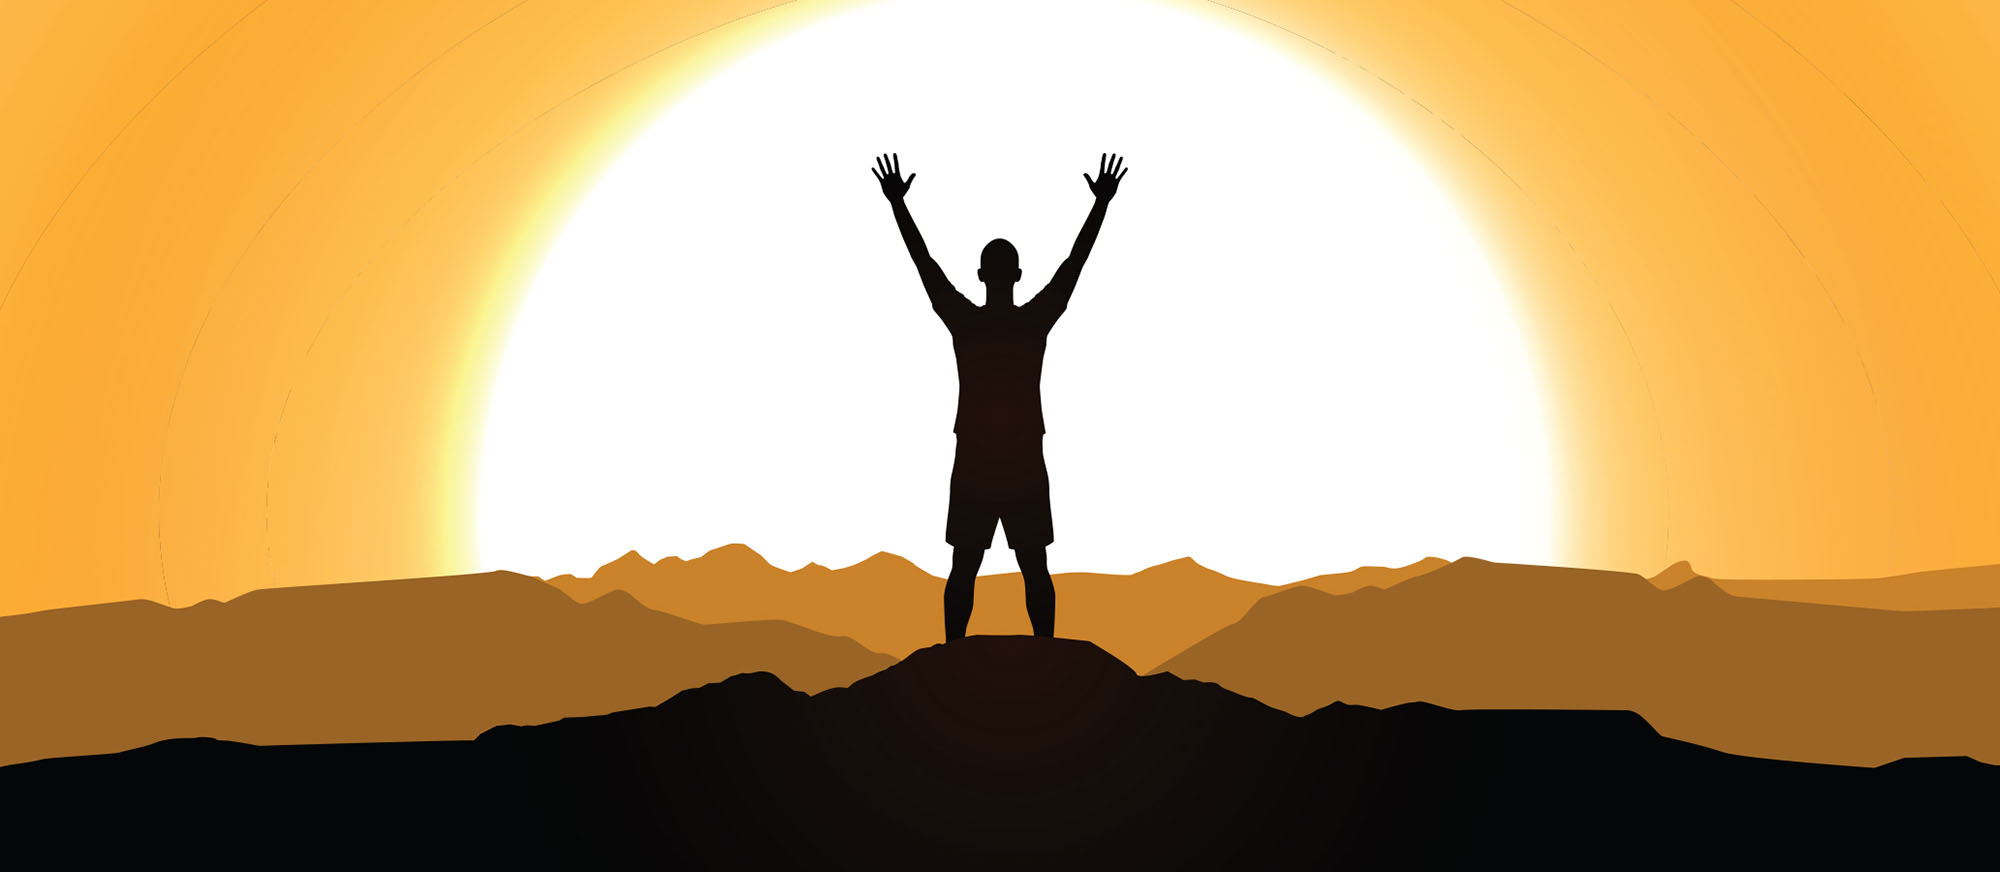 person standing with arms raised and sunrise in the background